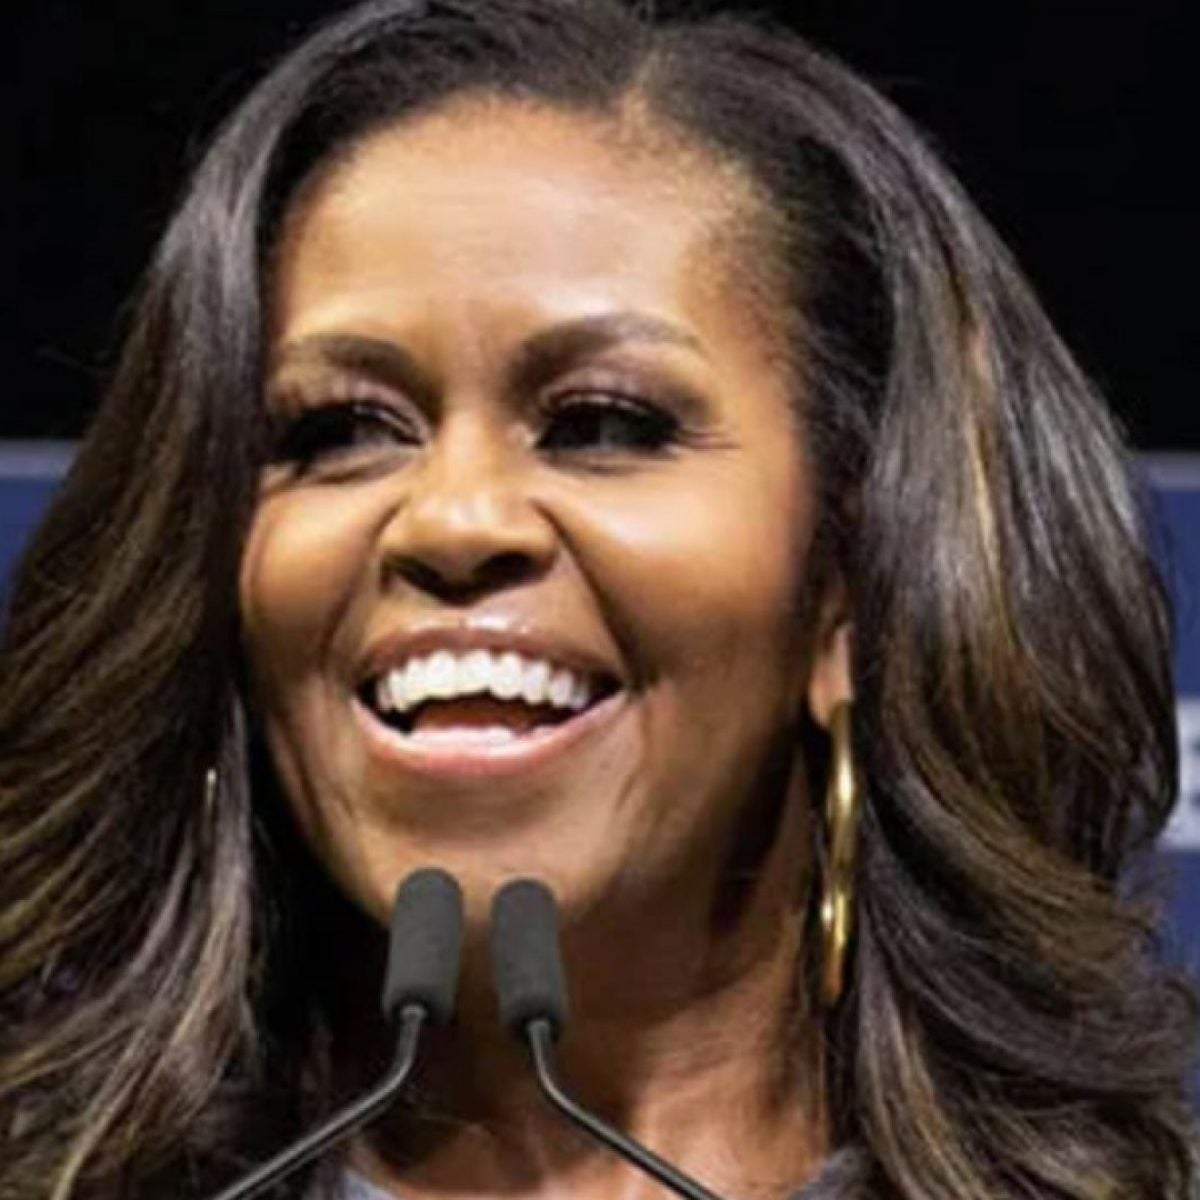 Michelle Obama and Celebs Pen Open Letter About Fight For Voting Rights